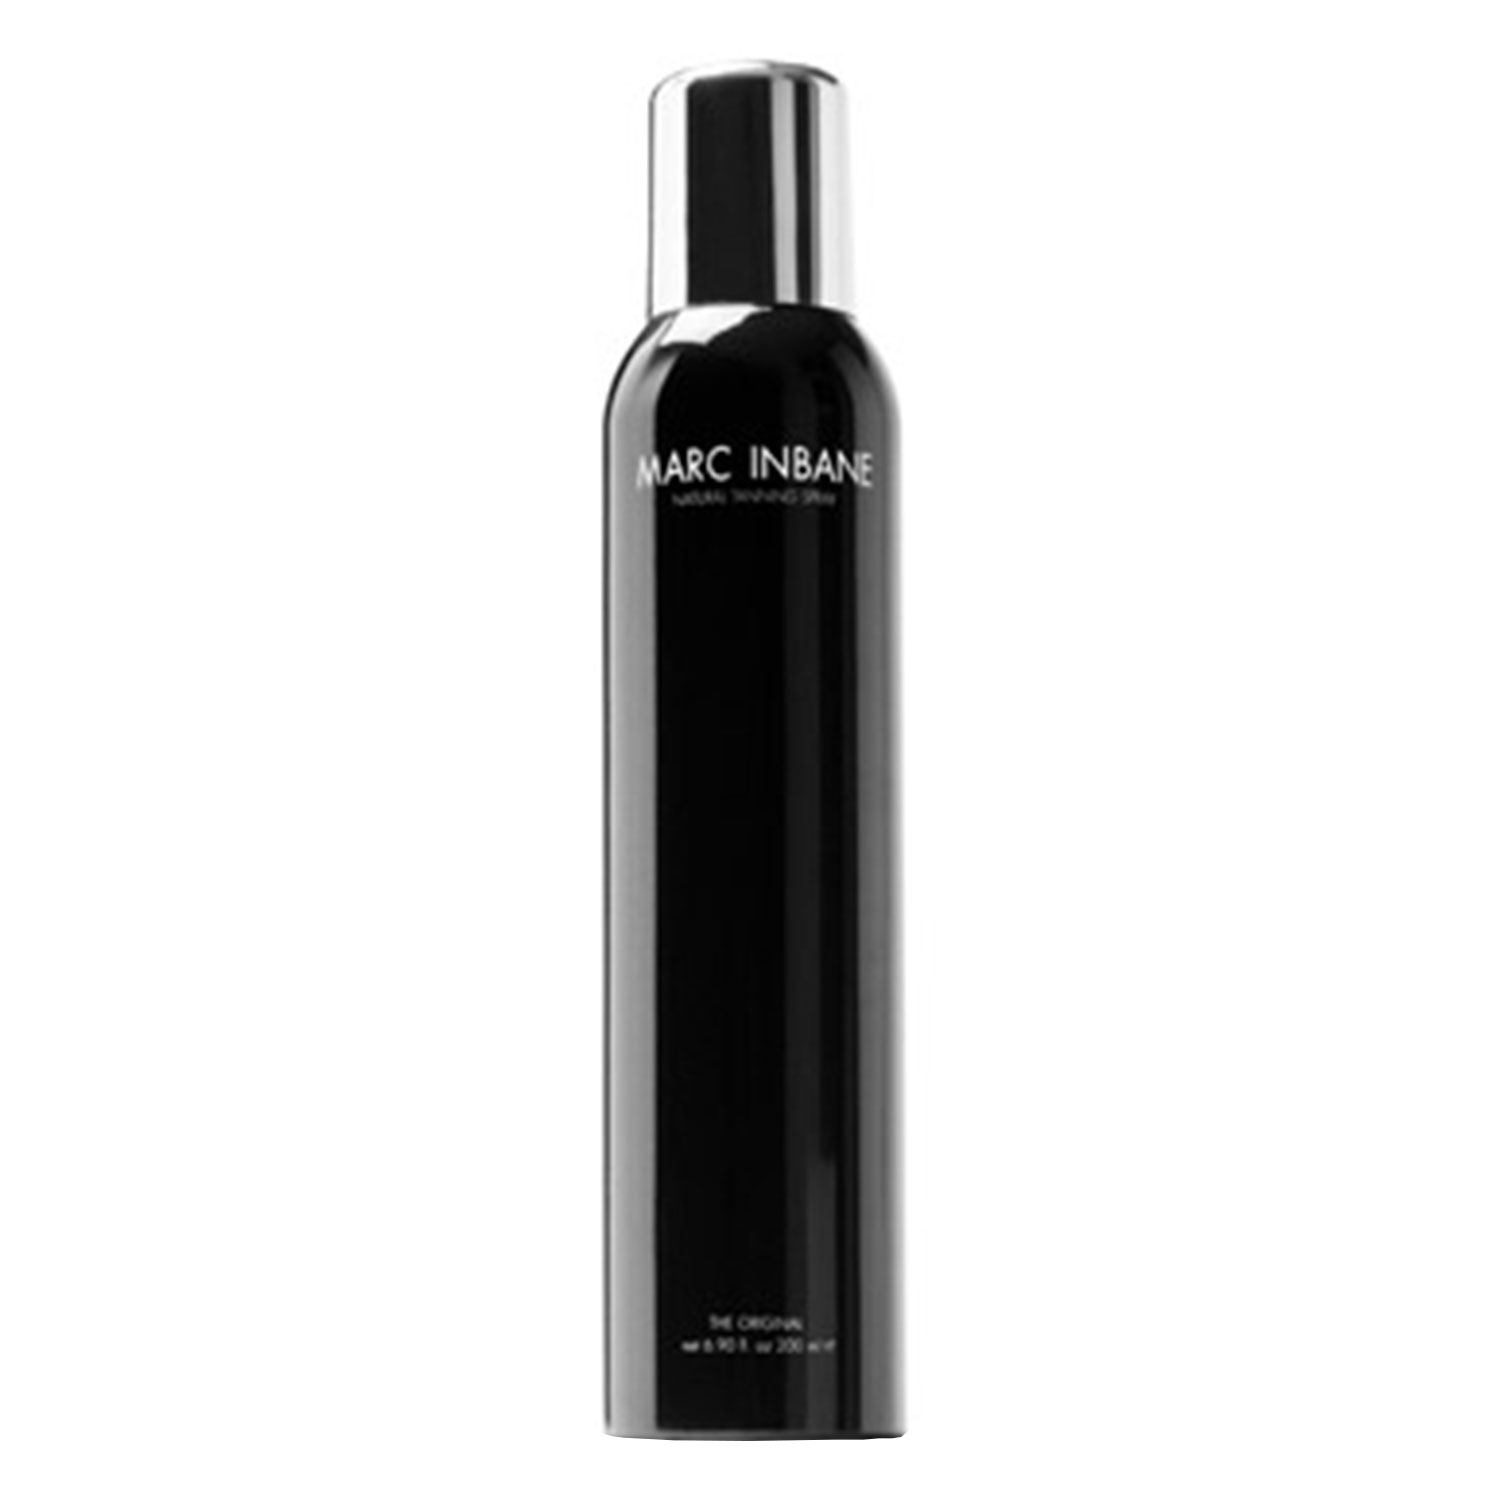 Marc Inbane - Natural Tanning Spray - 200ml